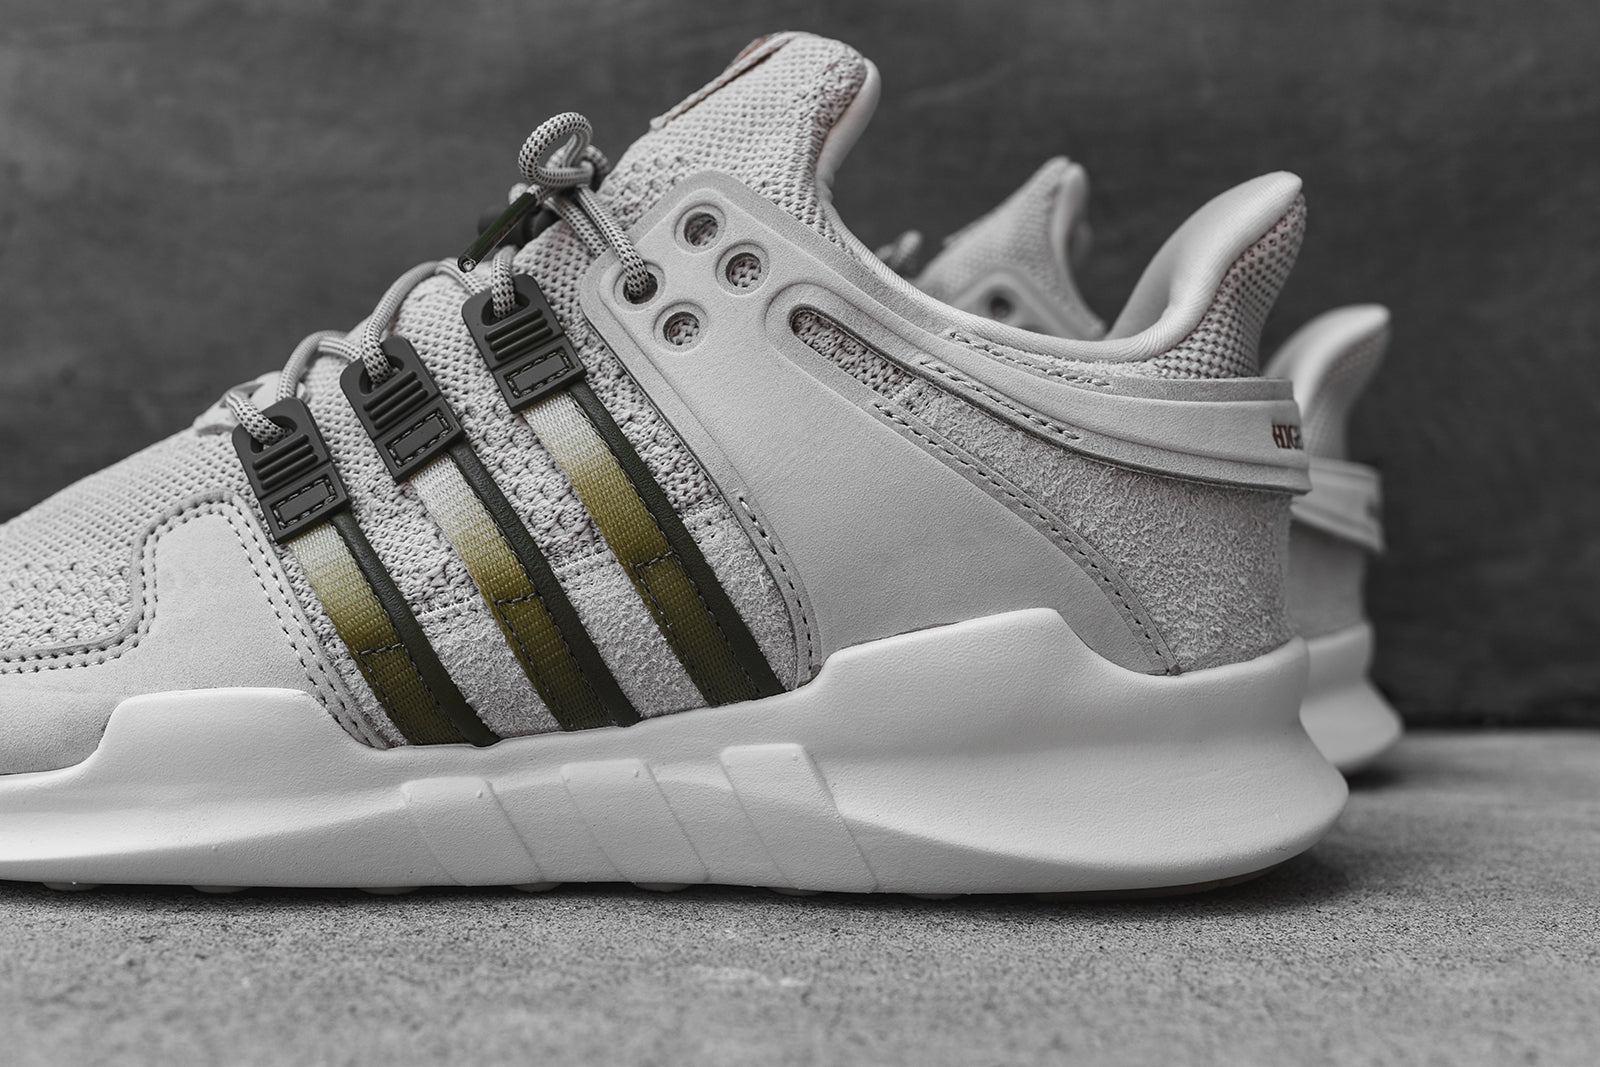 new arrival 71c23 d59c7 adidas Consortium x Highs and Lows EQT Support ADV - Sand ...